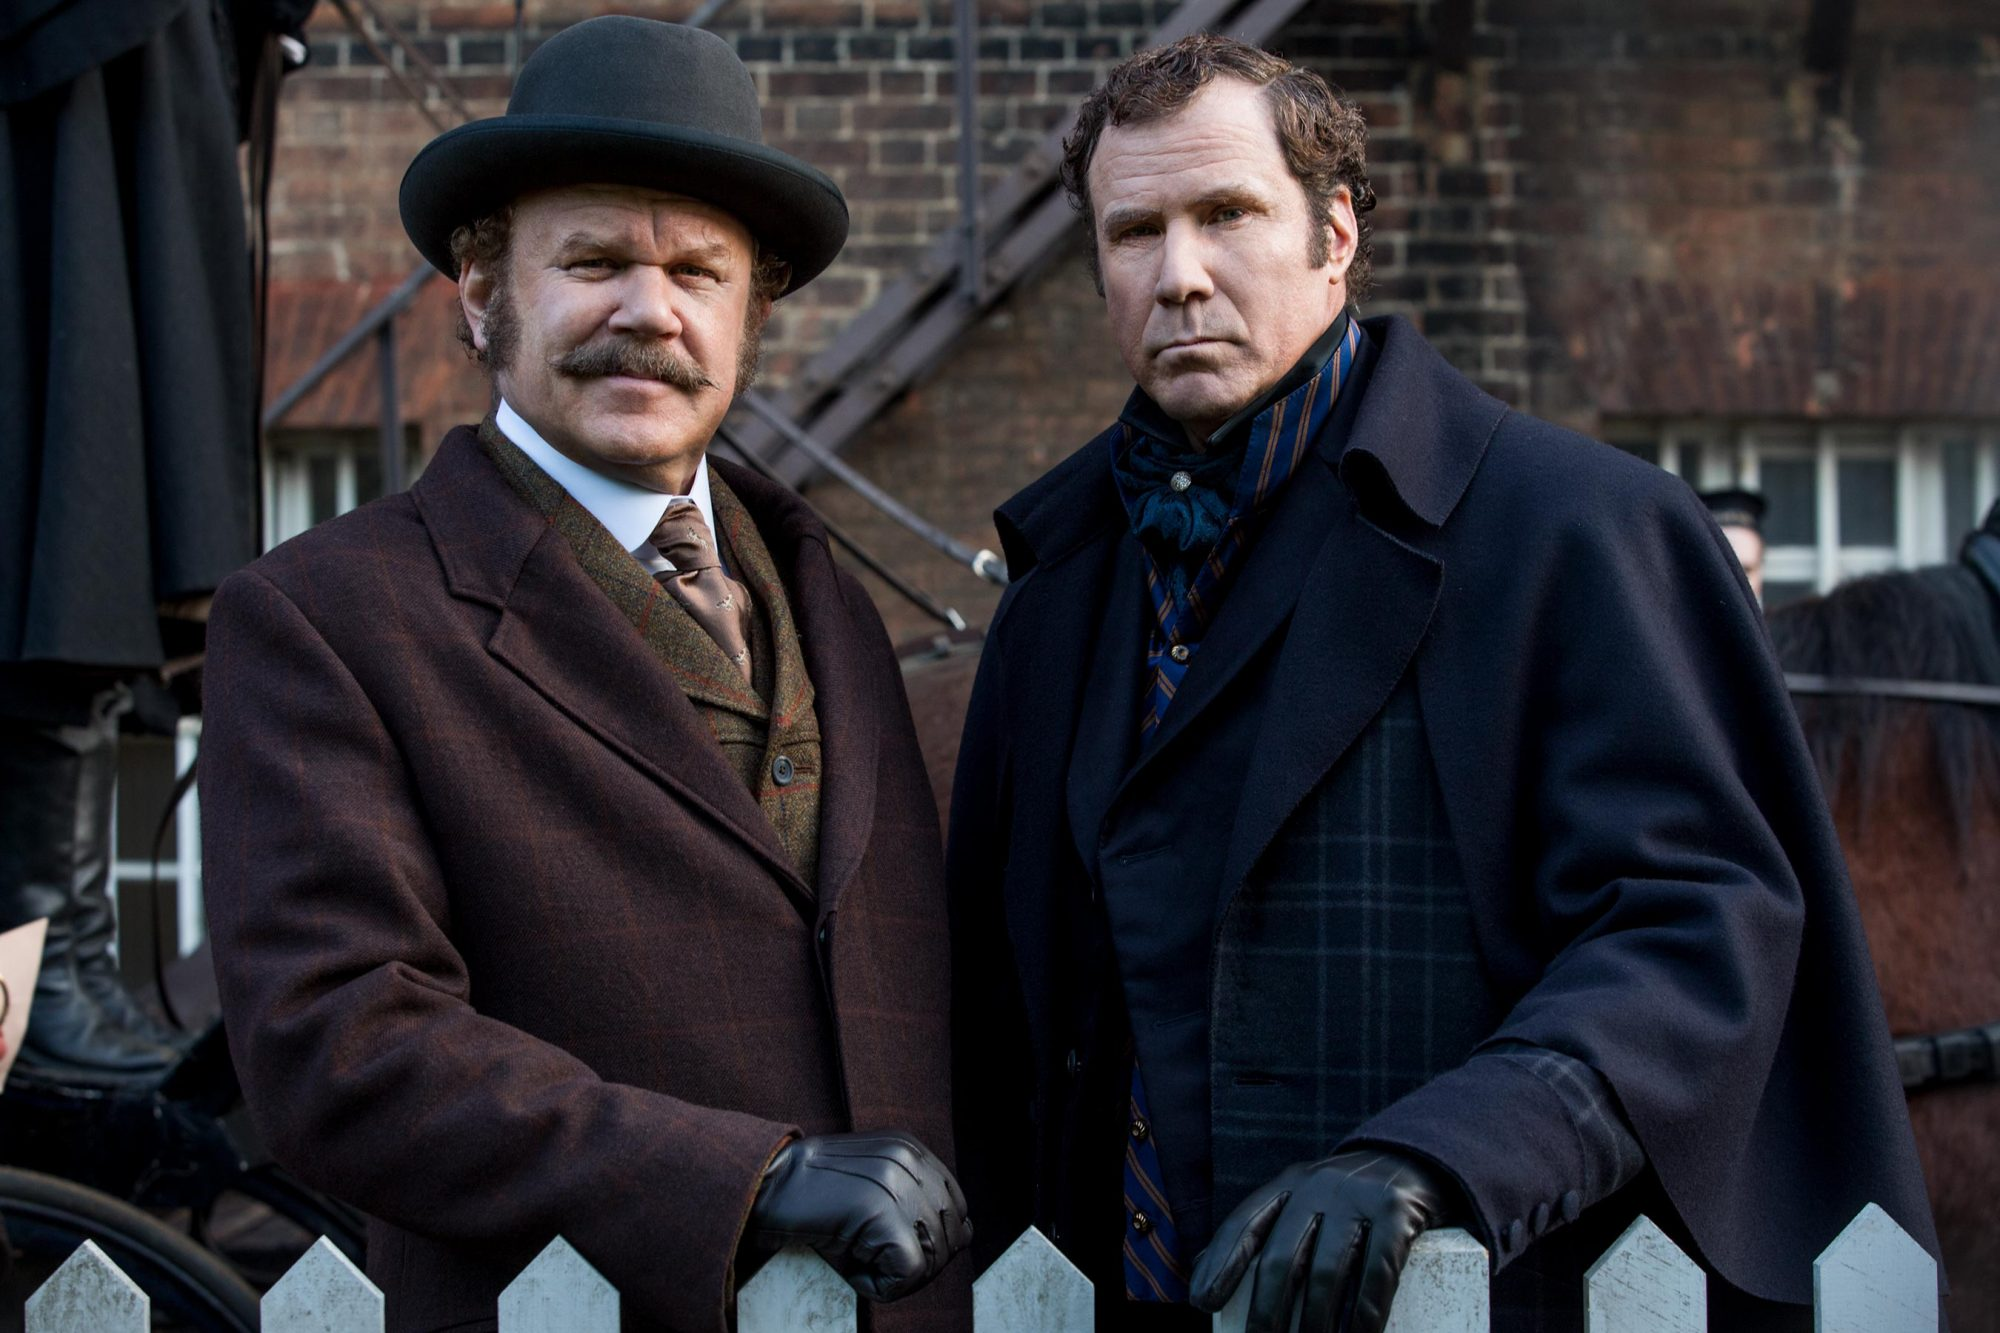 17. Will Ferrell and John C. Reilly in Holmes & Watson (2018)